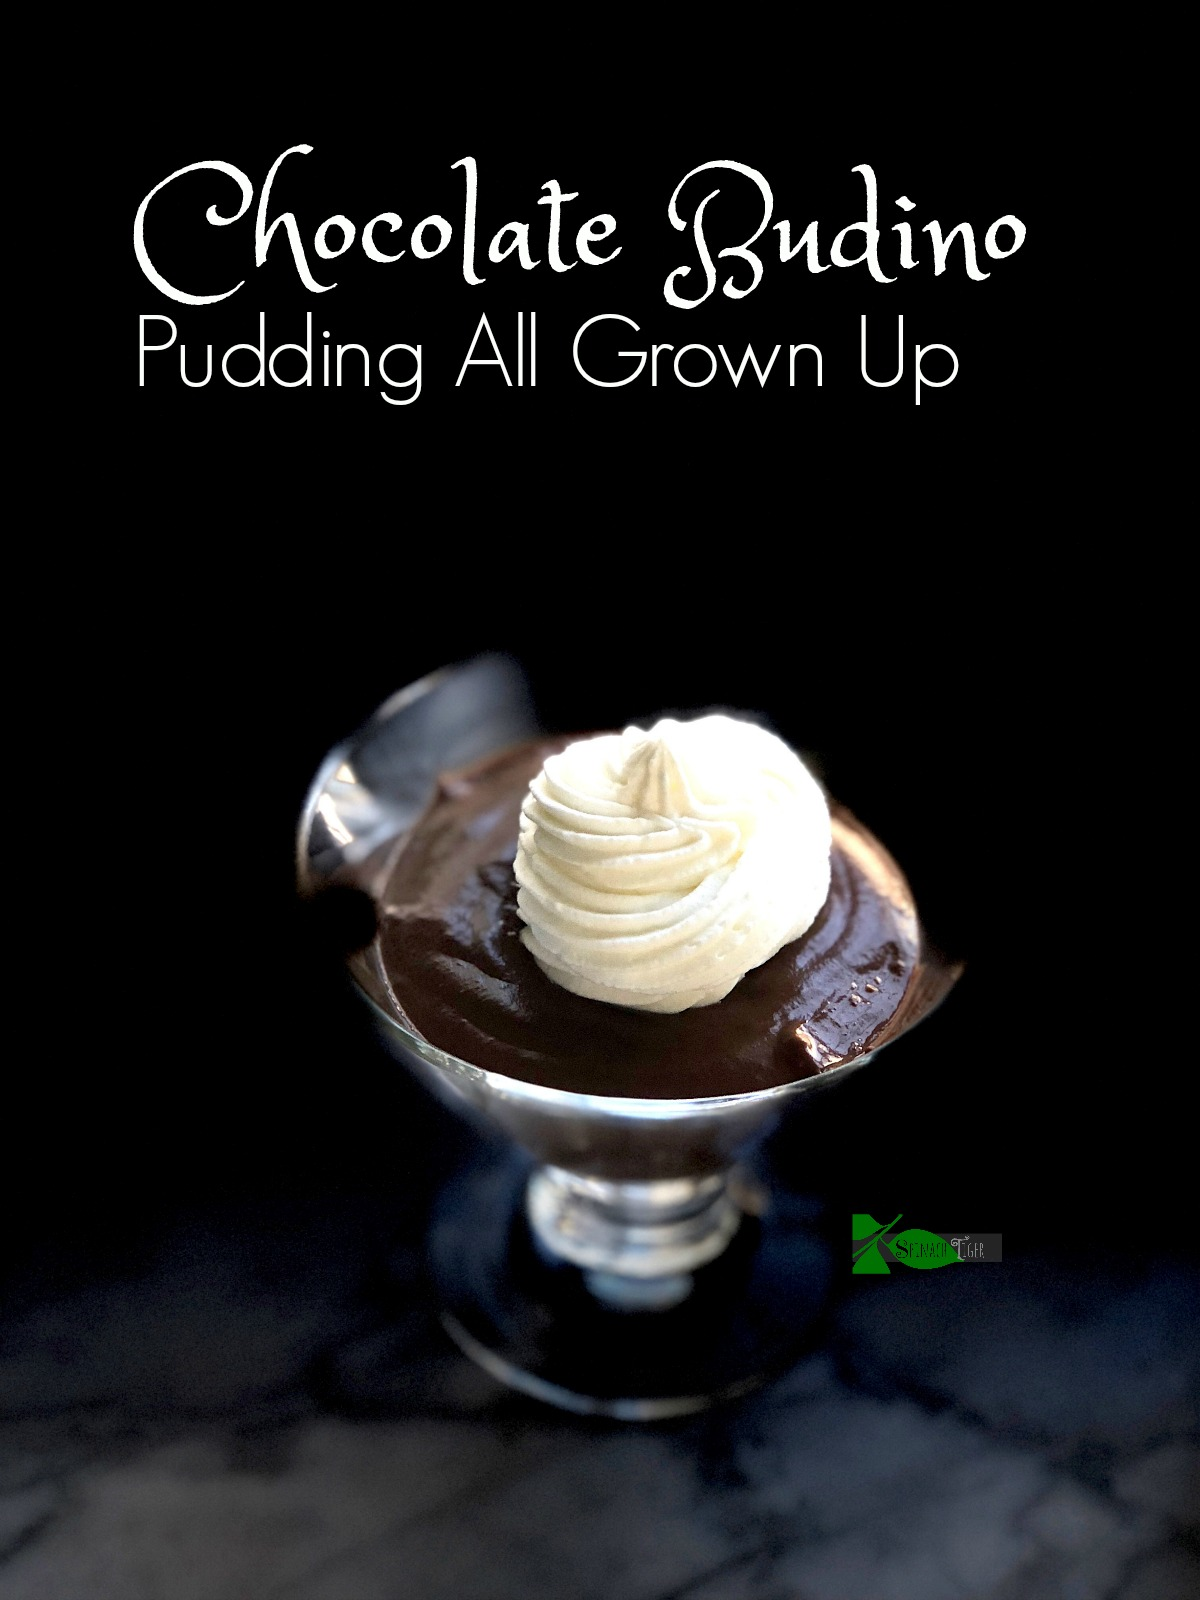 Chocolate Budino with Stabilized Whipped Cream Icing Recipe from Spinach Tiger